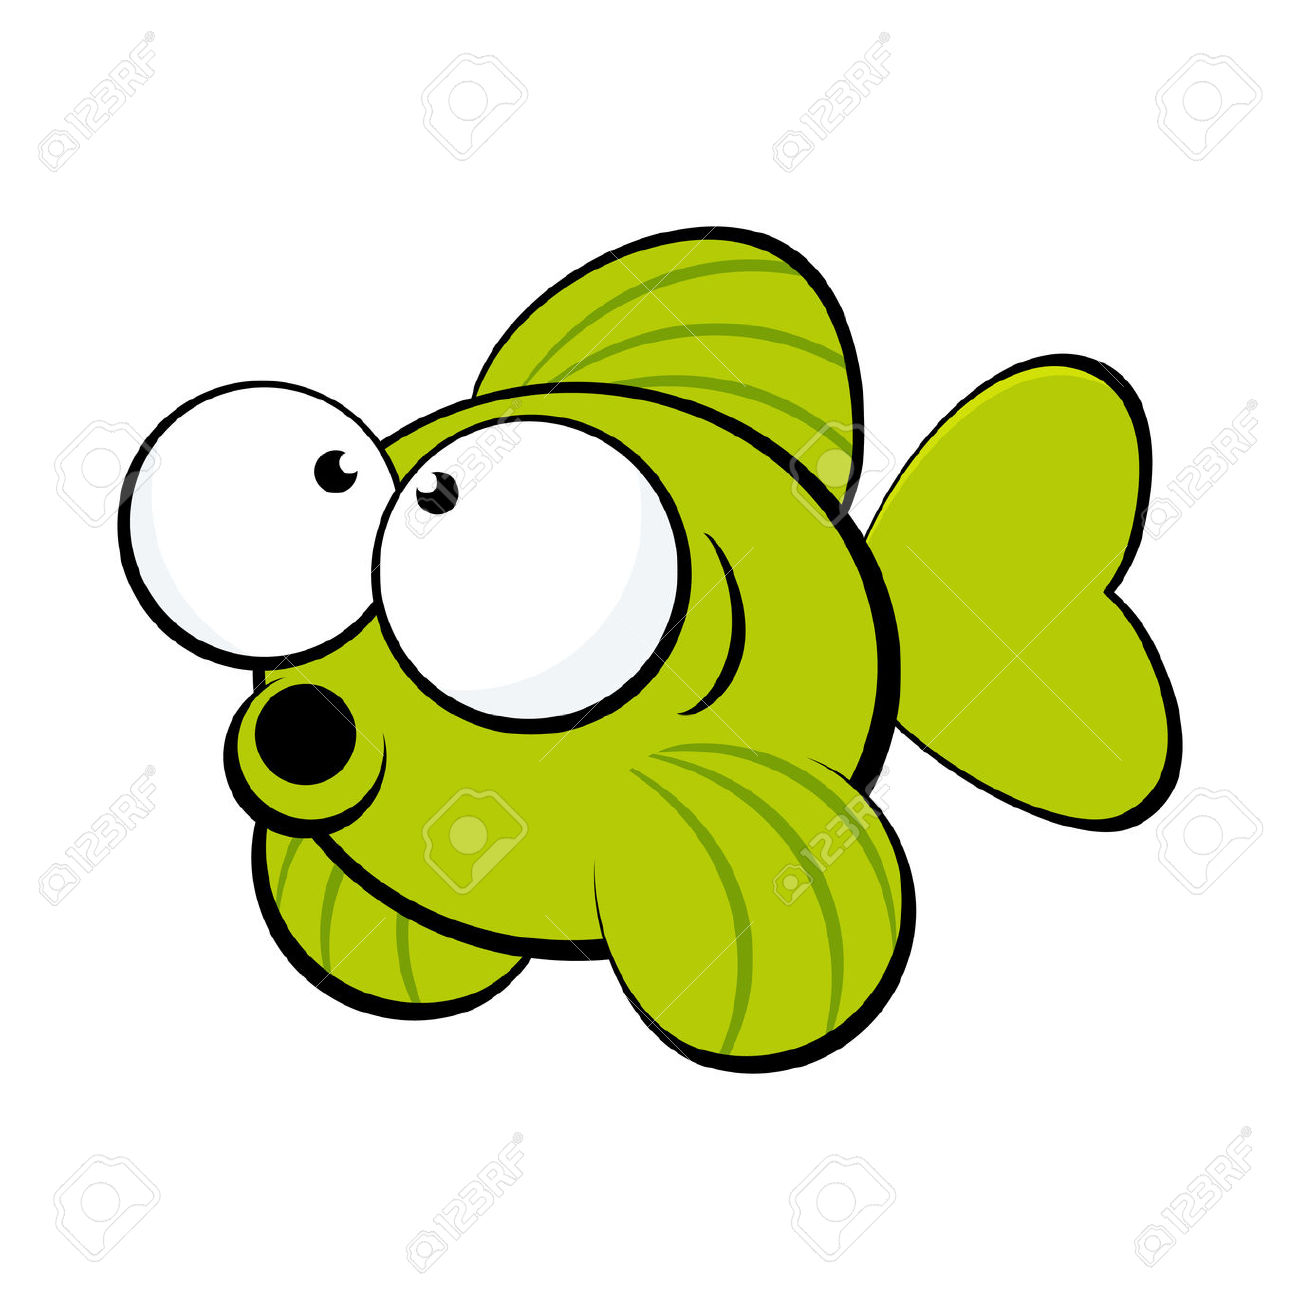 Funny Fish Drawing at GetDrawings.com | Free for personal use Funny ...